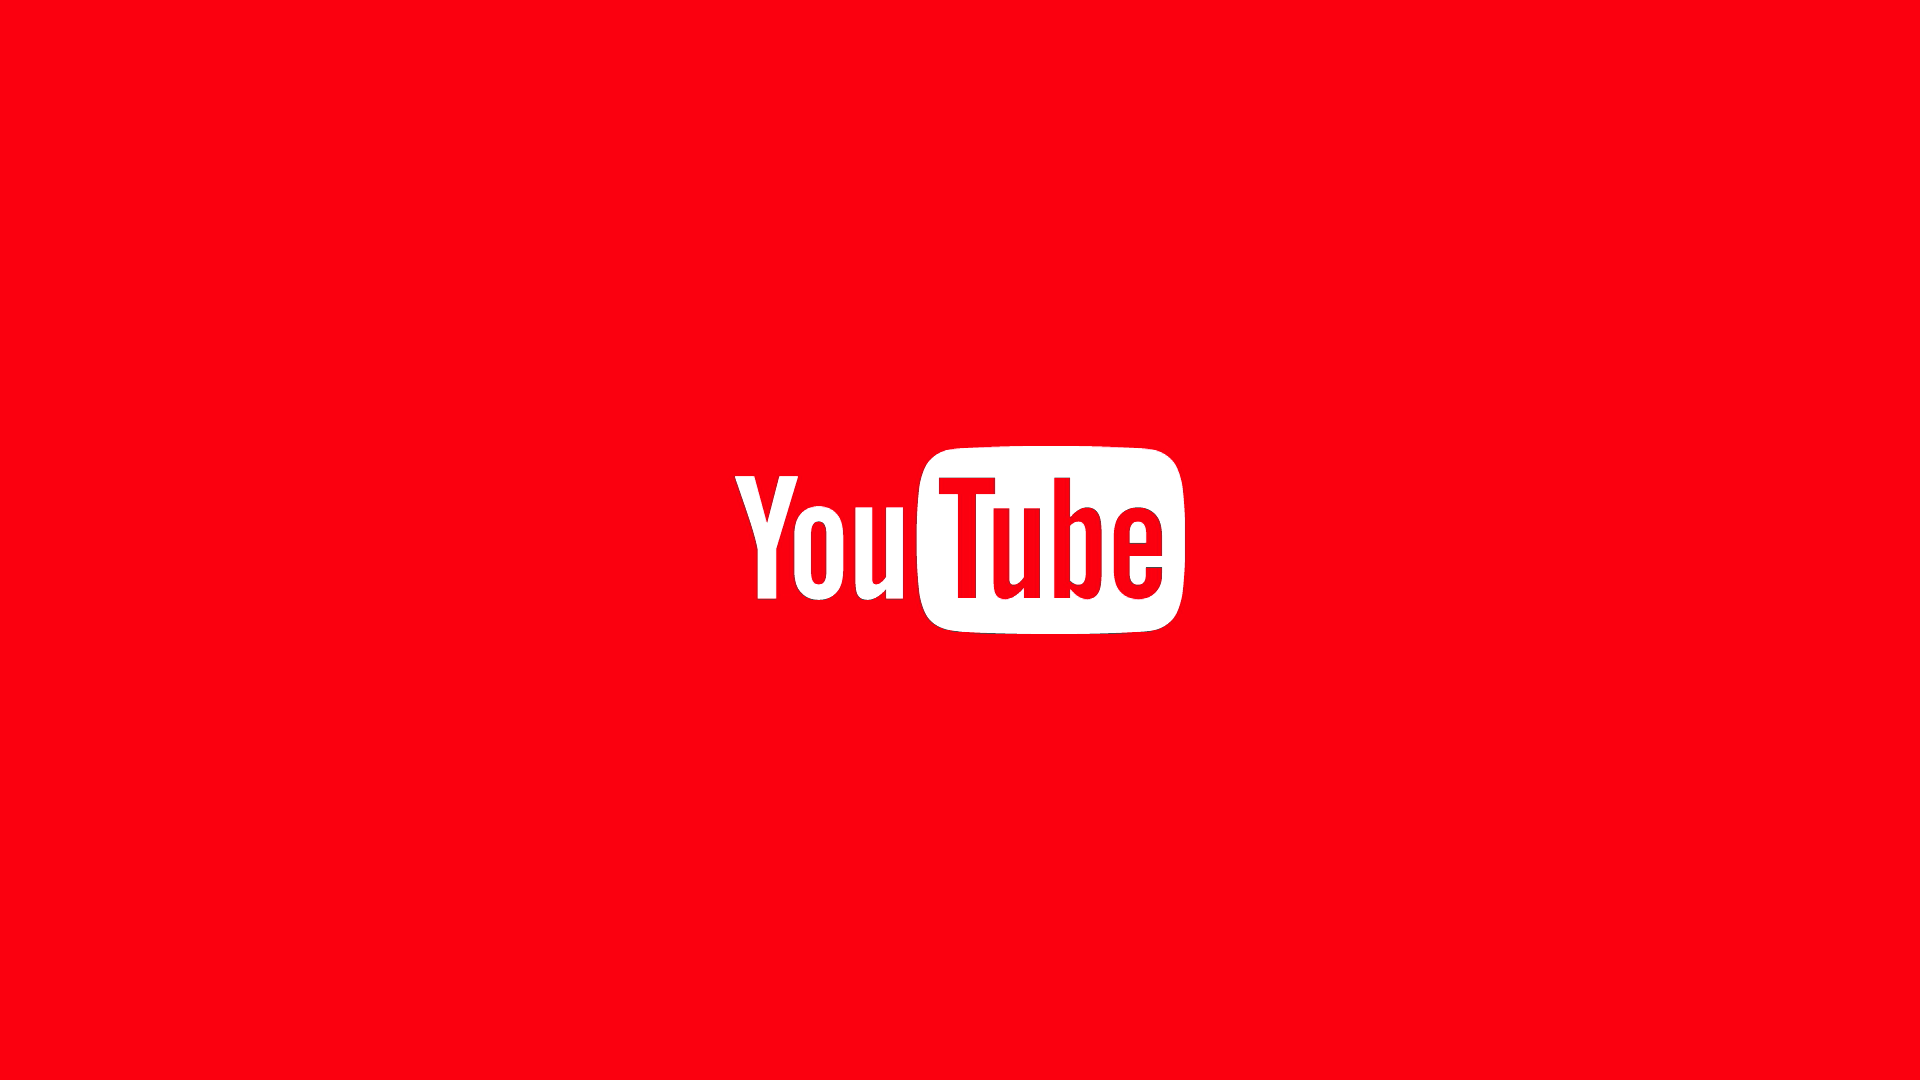 youtube red desktop wallpaper 526